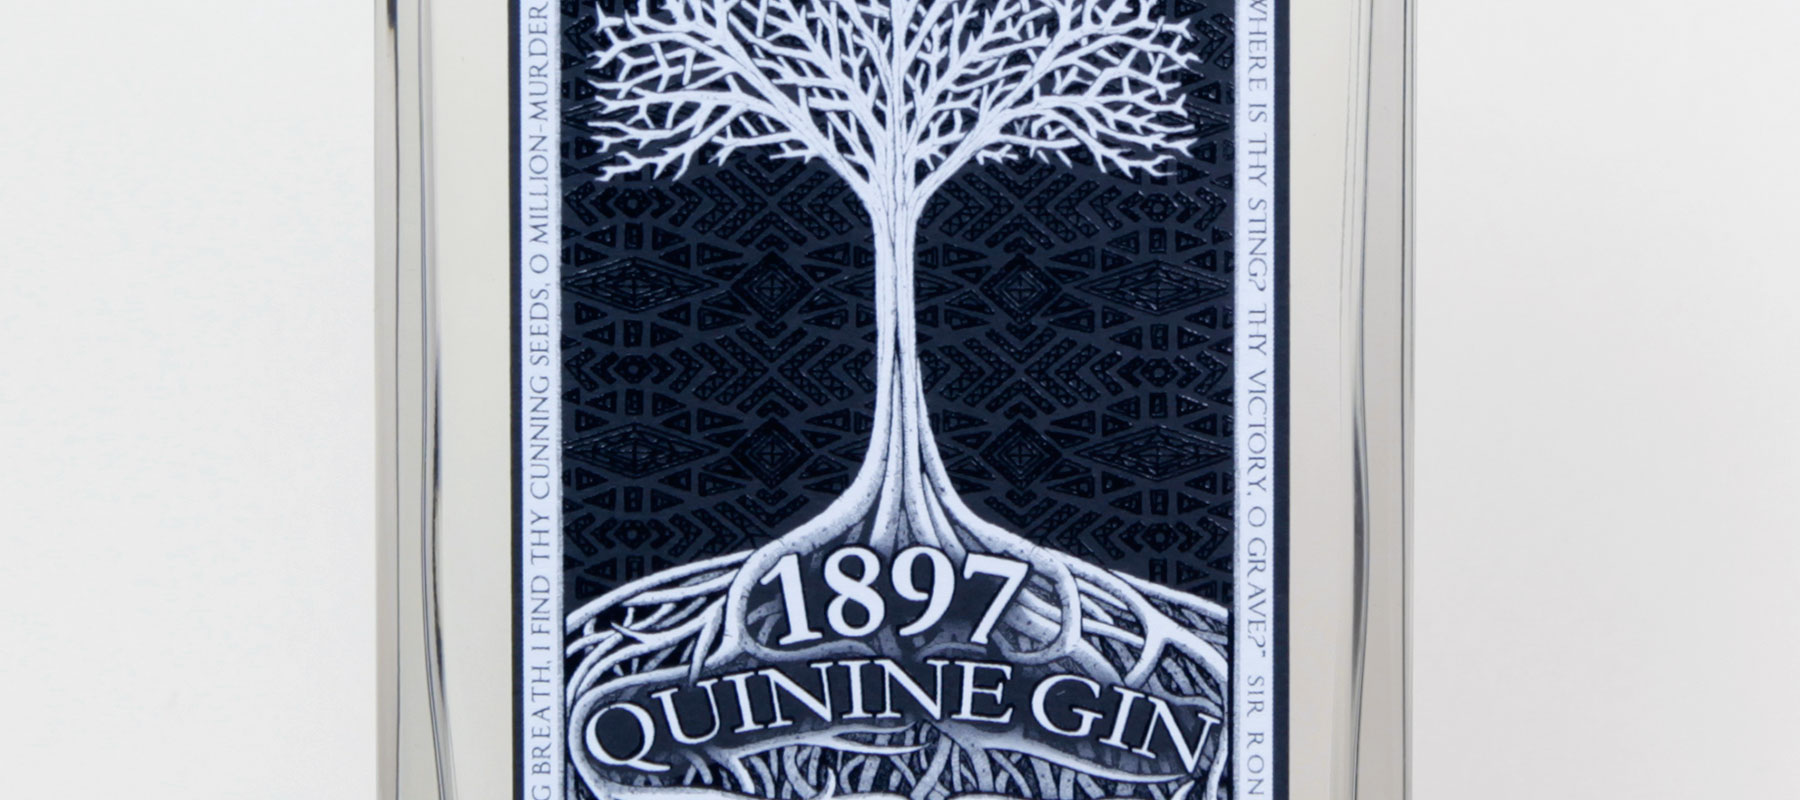 GIN REVIEW: 1897 QUININE GIN 45.8%